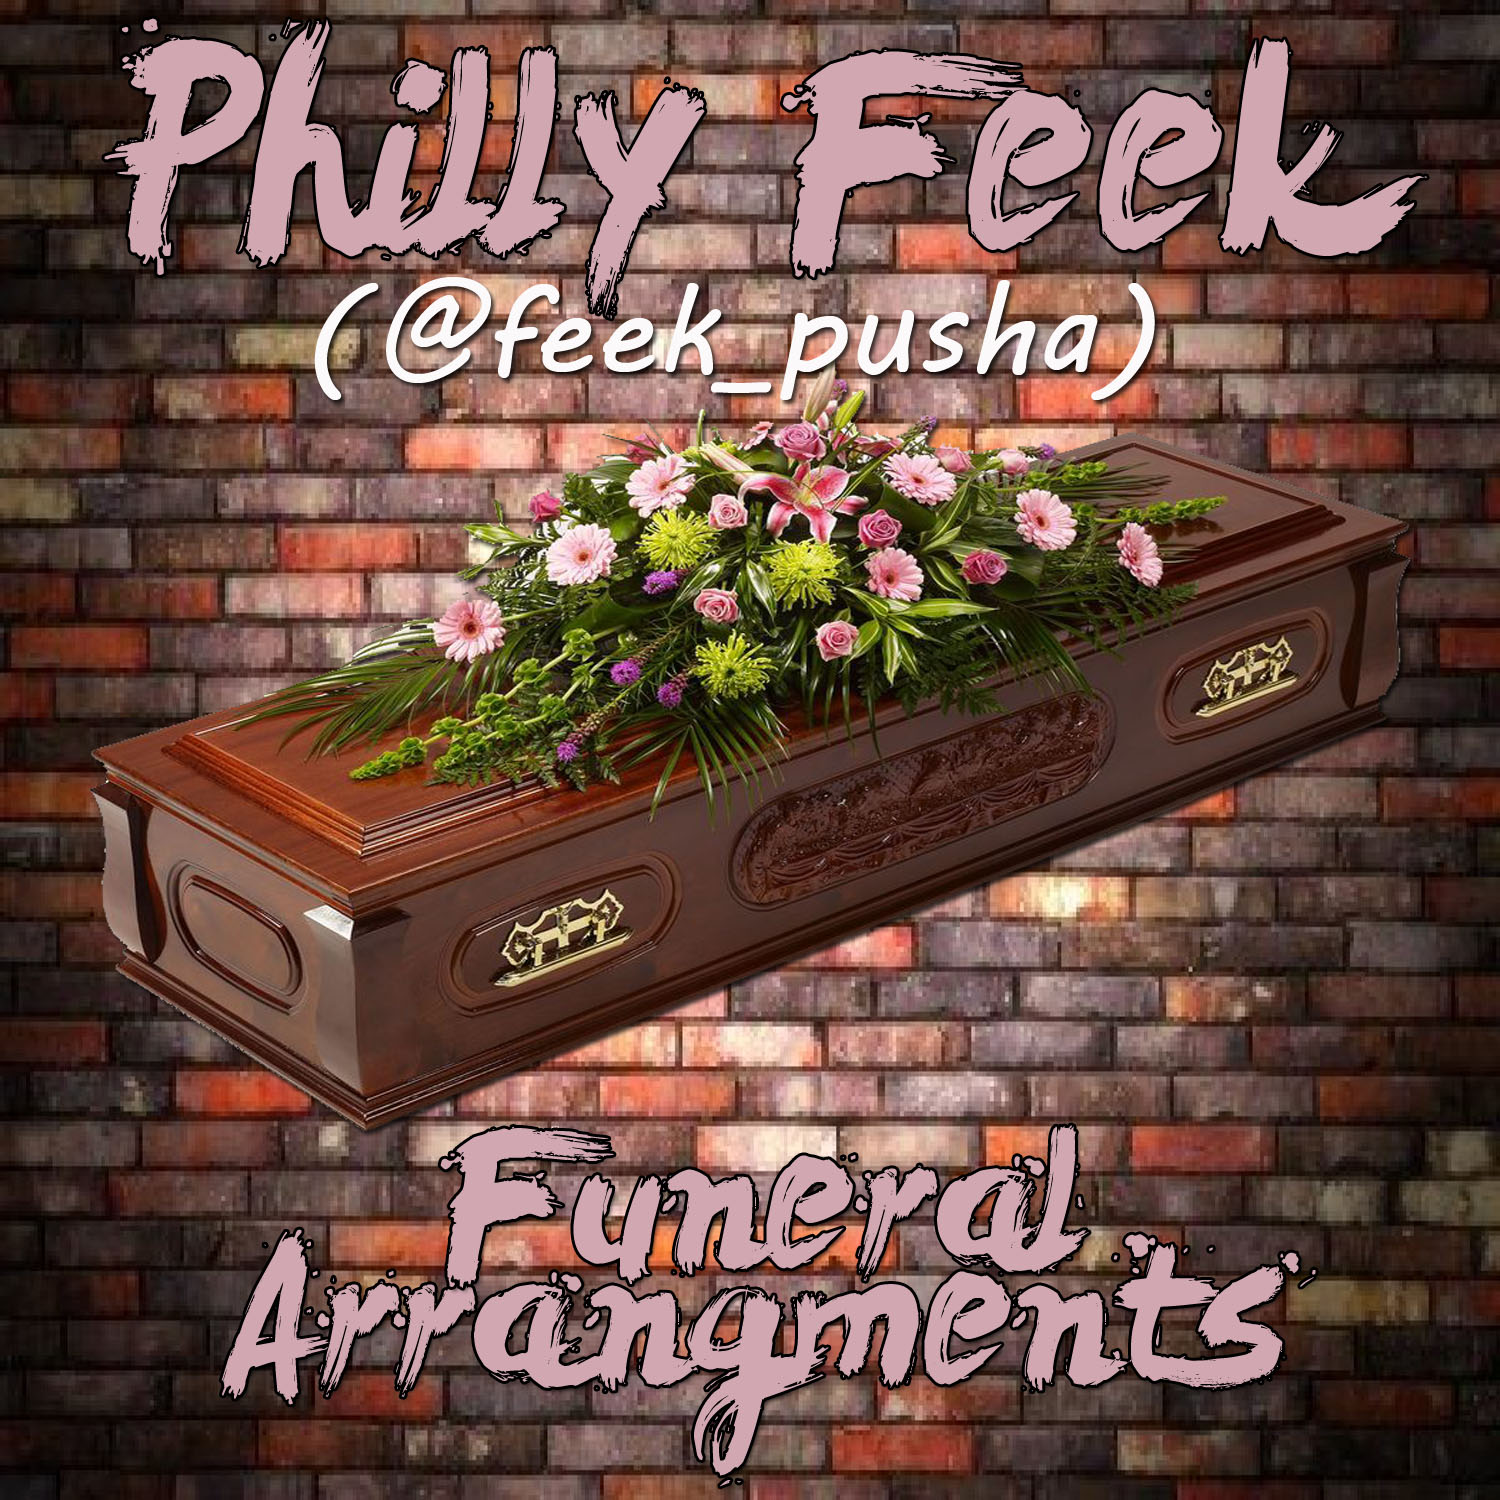 philly-feek-funeral-arrangements-young-sam-diss-prod-by-sarom-soundz-HHS1987-2013 Philly Feek - Funeral Arrangements (Young Sam Diss) (Prod by Sarom Soundz)